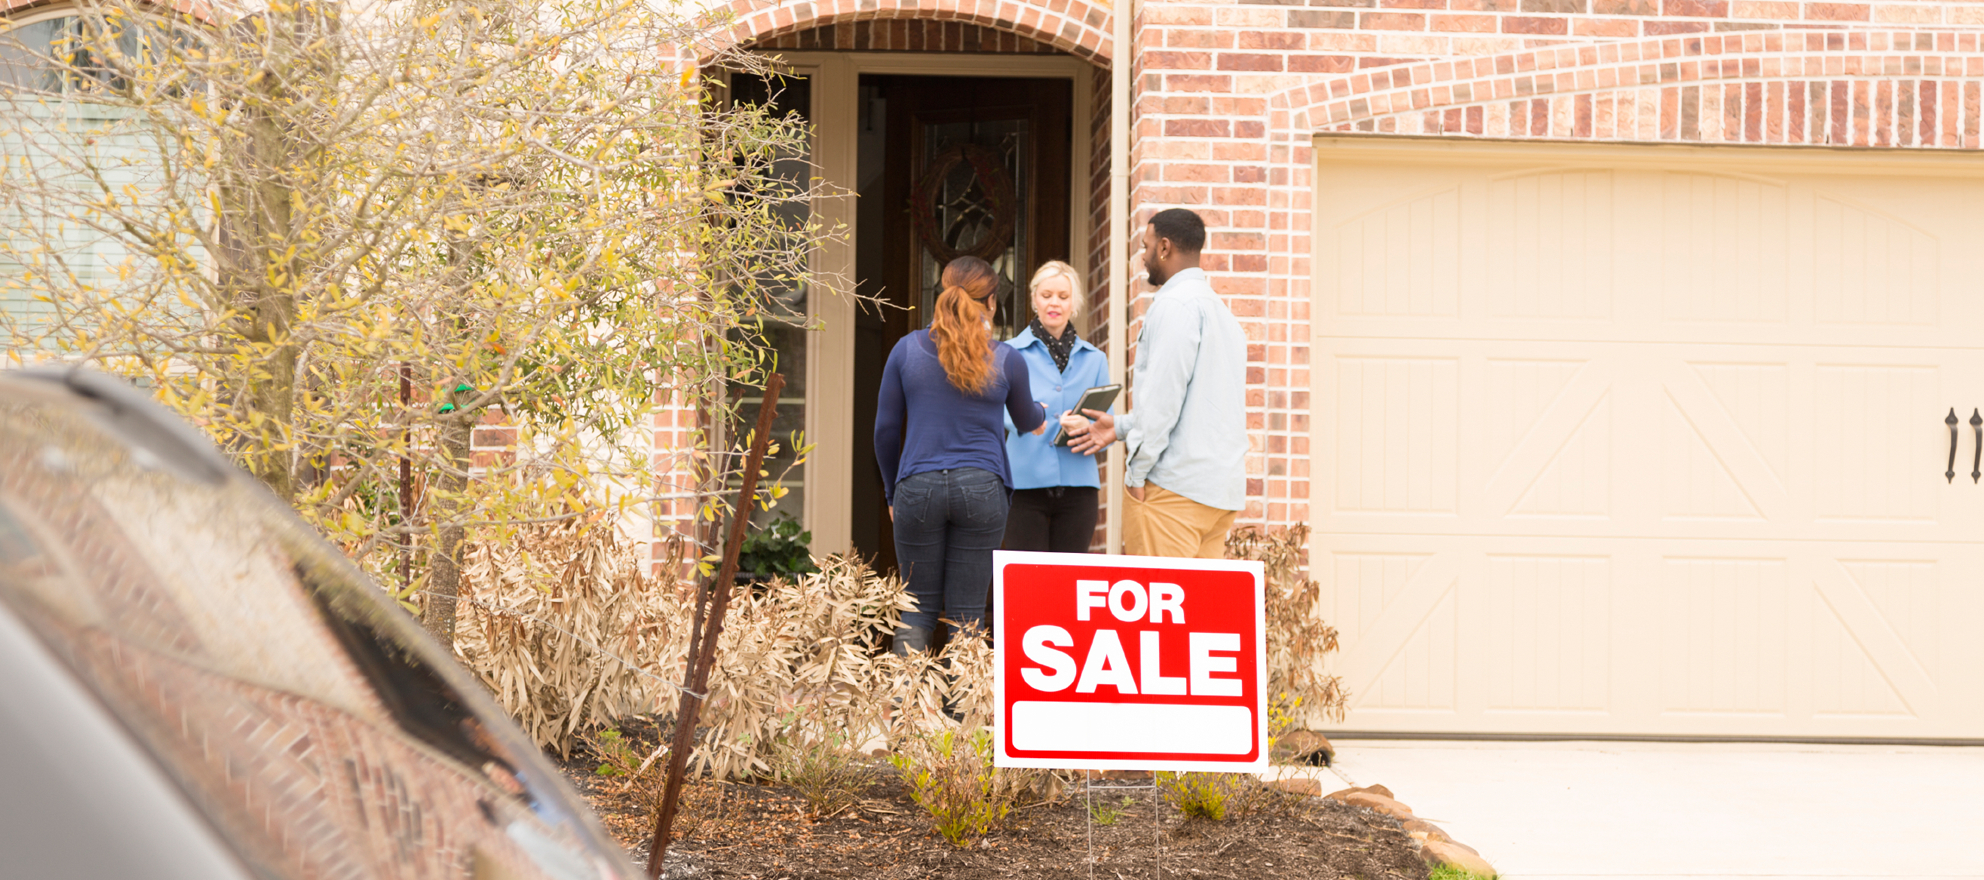 Millennial homebuying intentions: The good and the bad